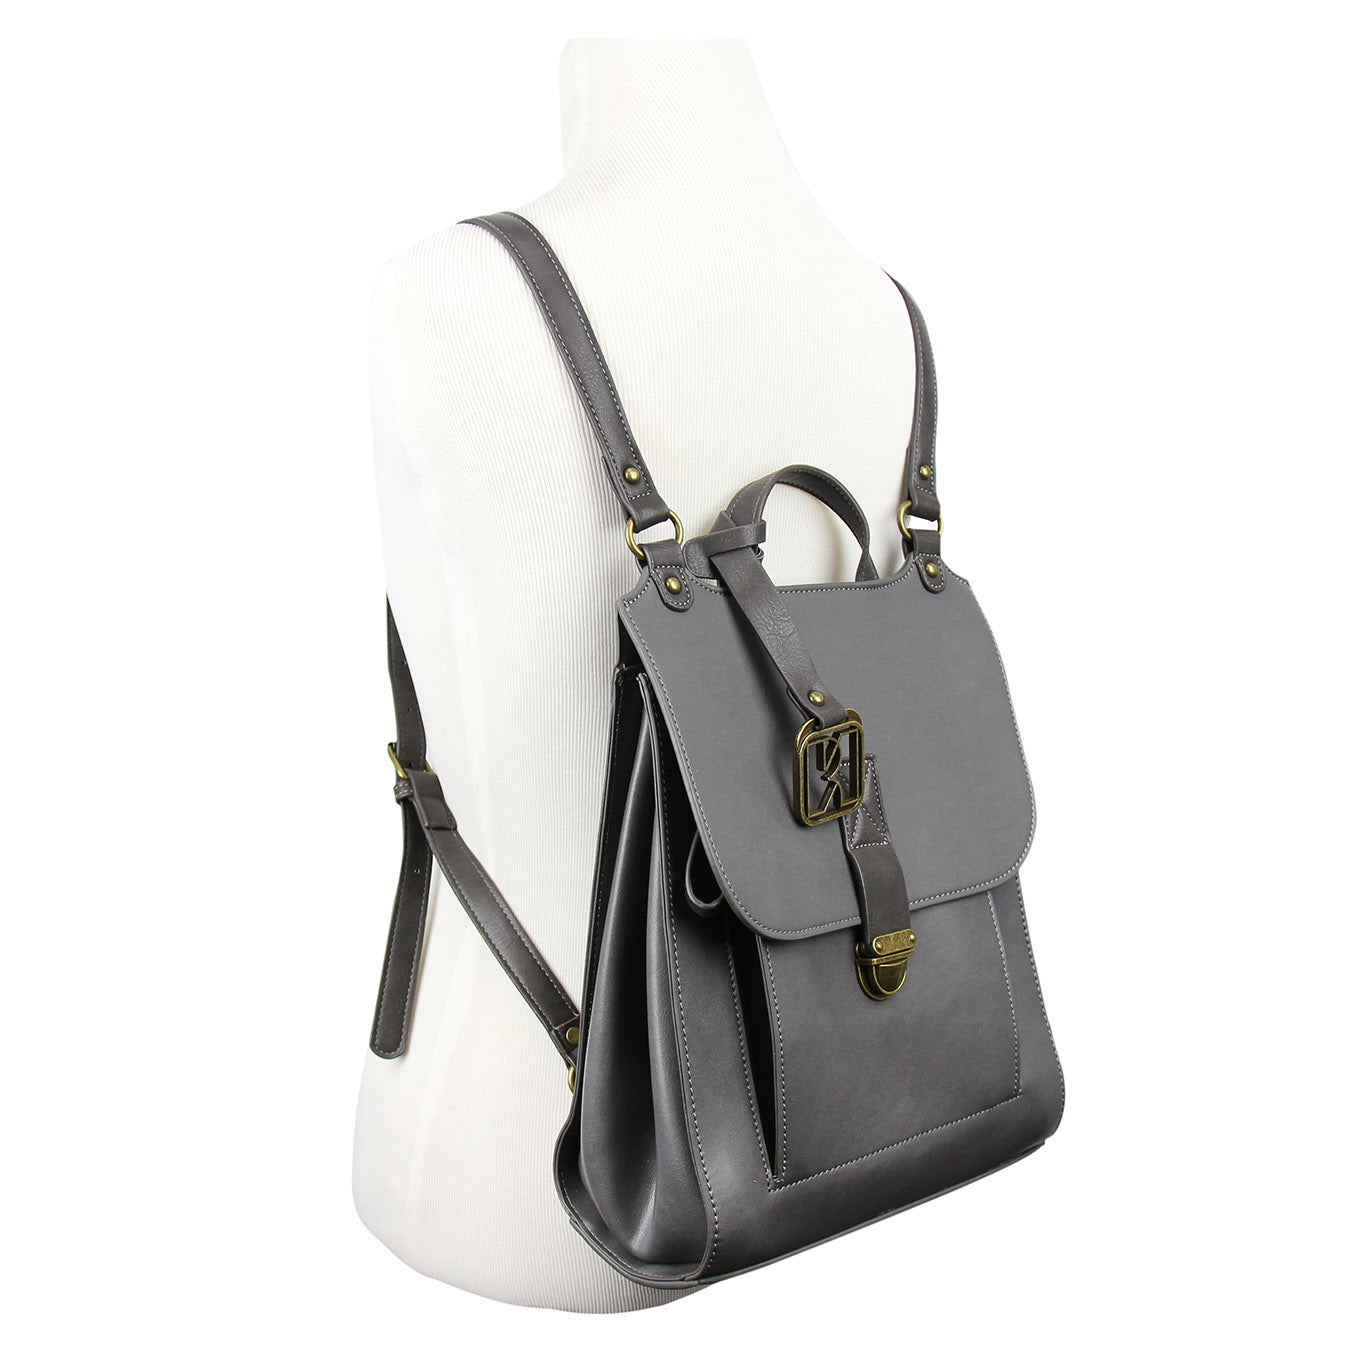 Pocketta Bag - Grey